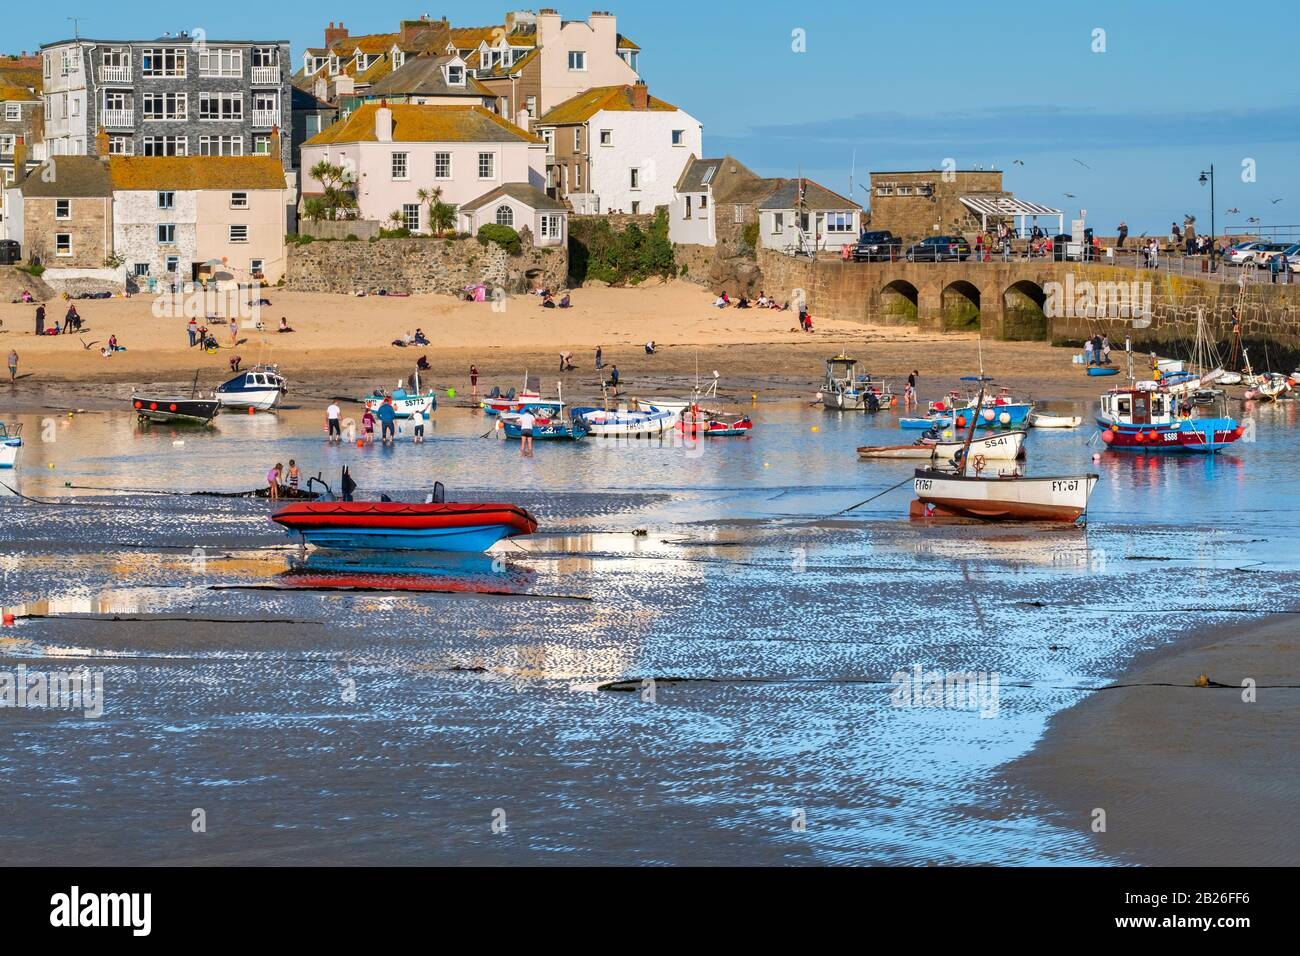 Views across St Ives Harbour beach to Smeatons Pier with people on the beach, boats in the Harbour and houses, St Ives, Cornwall, UK Stock Photo